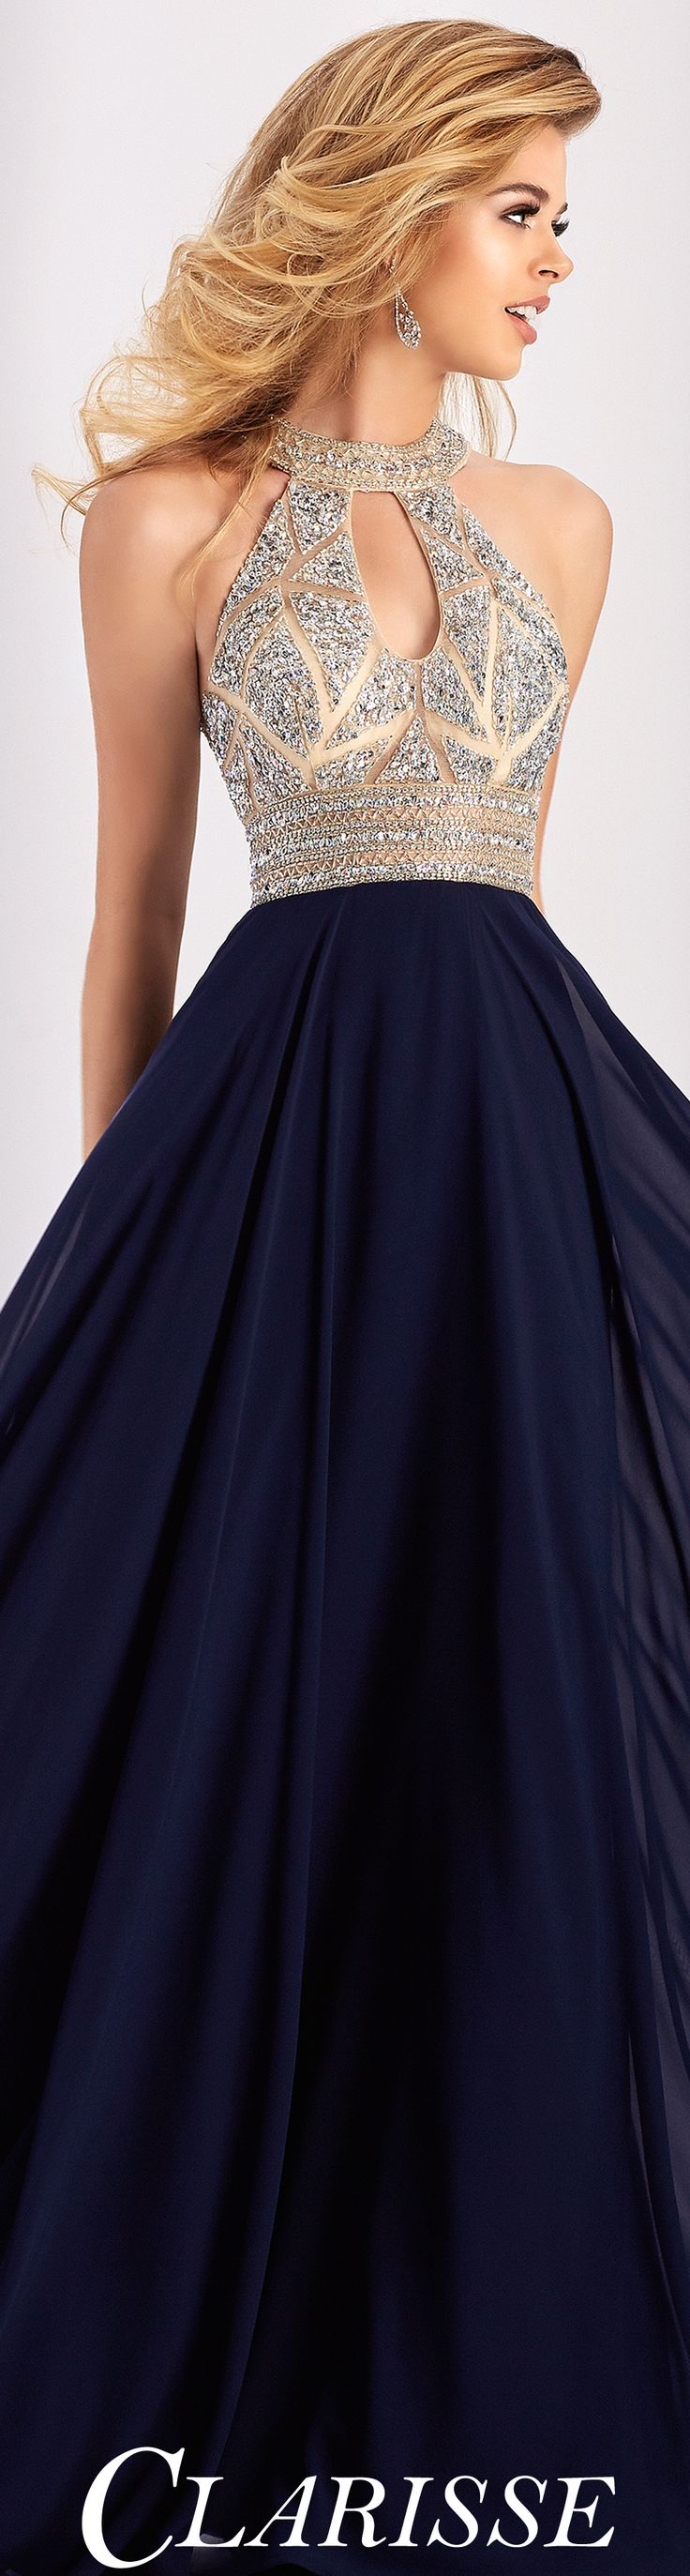 High Neck Chiffon Prom Dresses 2018